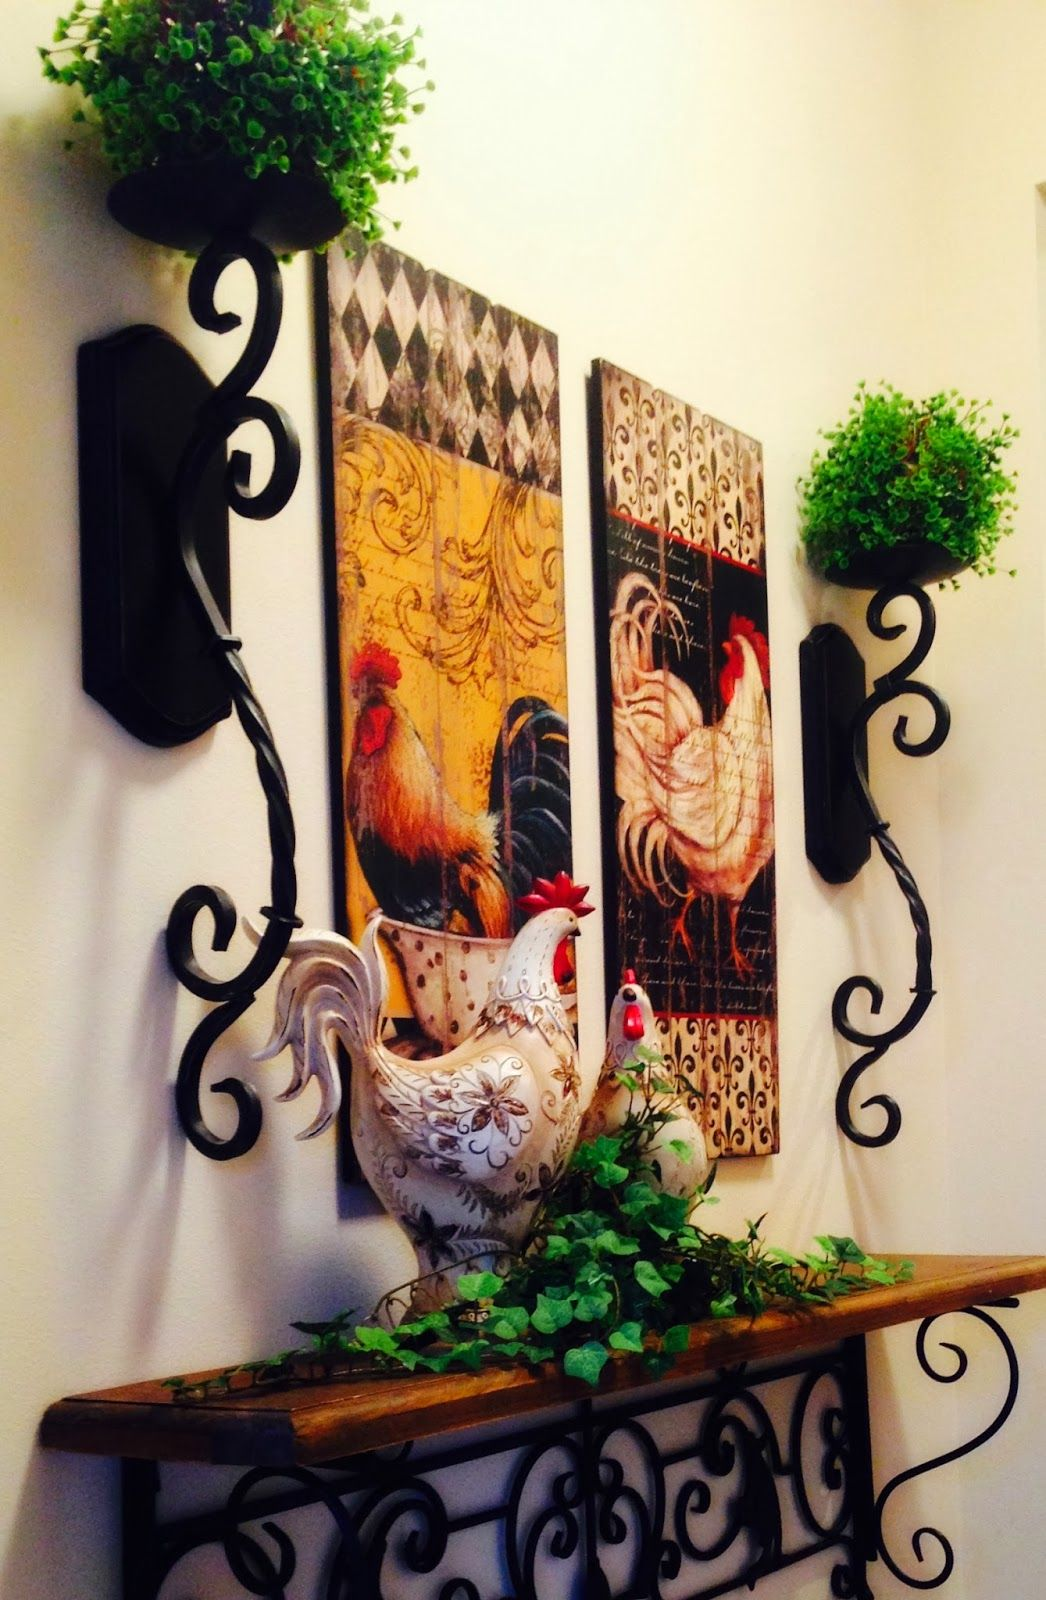 The Tuscan Home Wall Vignette Rooster Kitchen Decor Rooster Decor Tuscany Decor